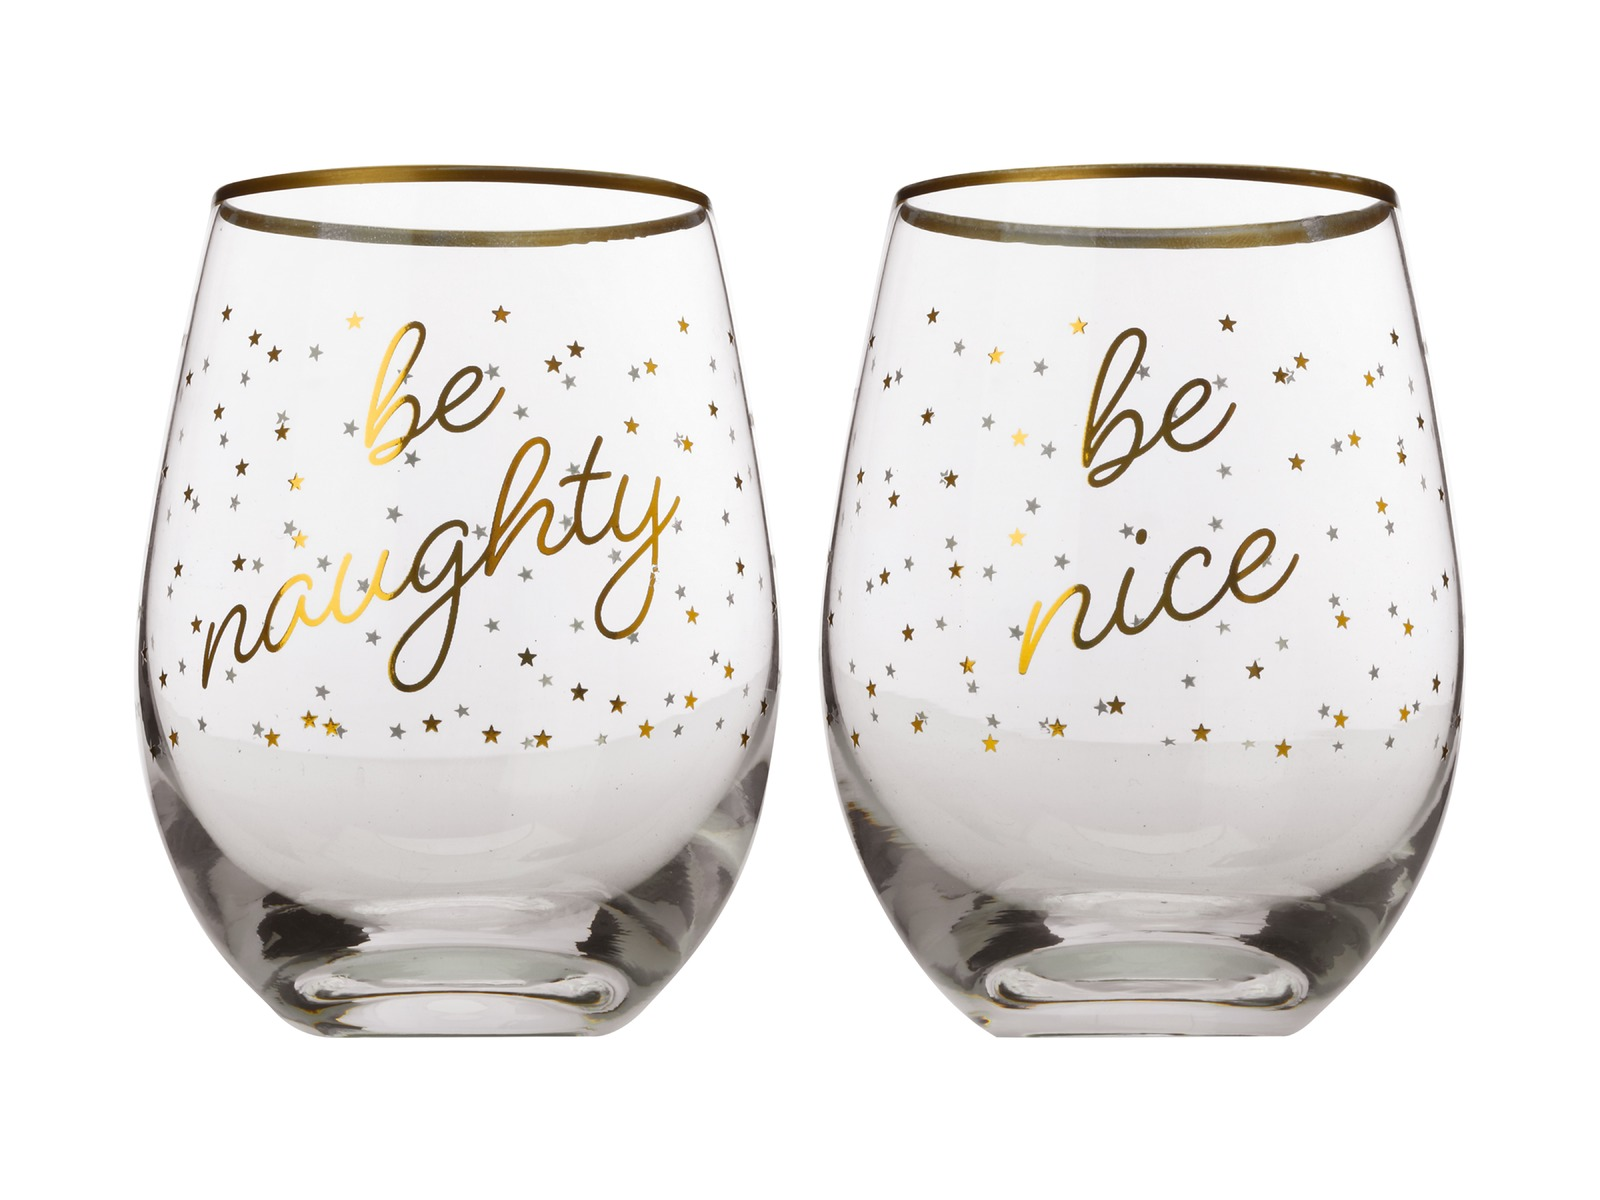 Maxwell & Williams Celebrations Stemless Glasses - Naughty / Nice image